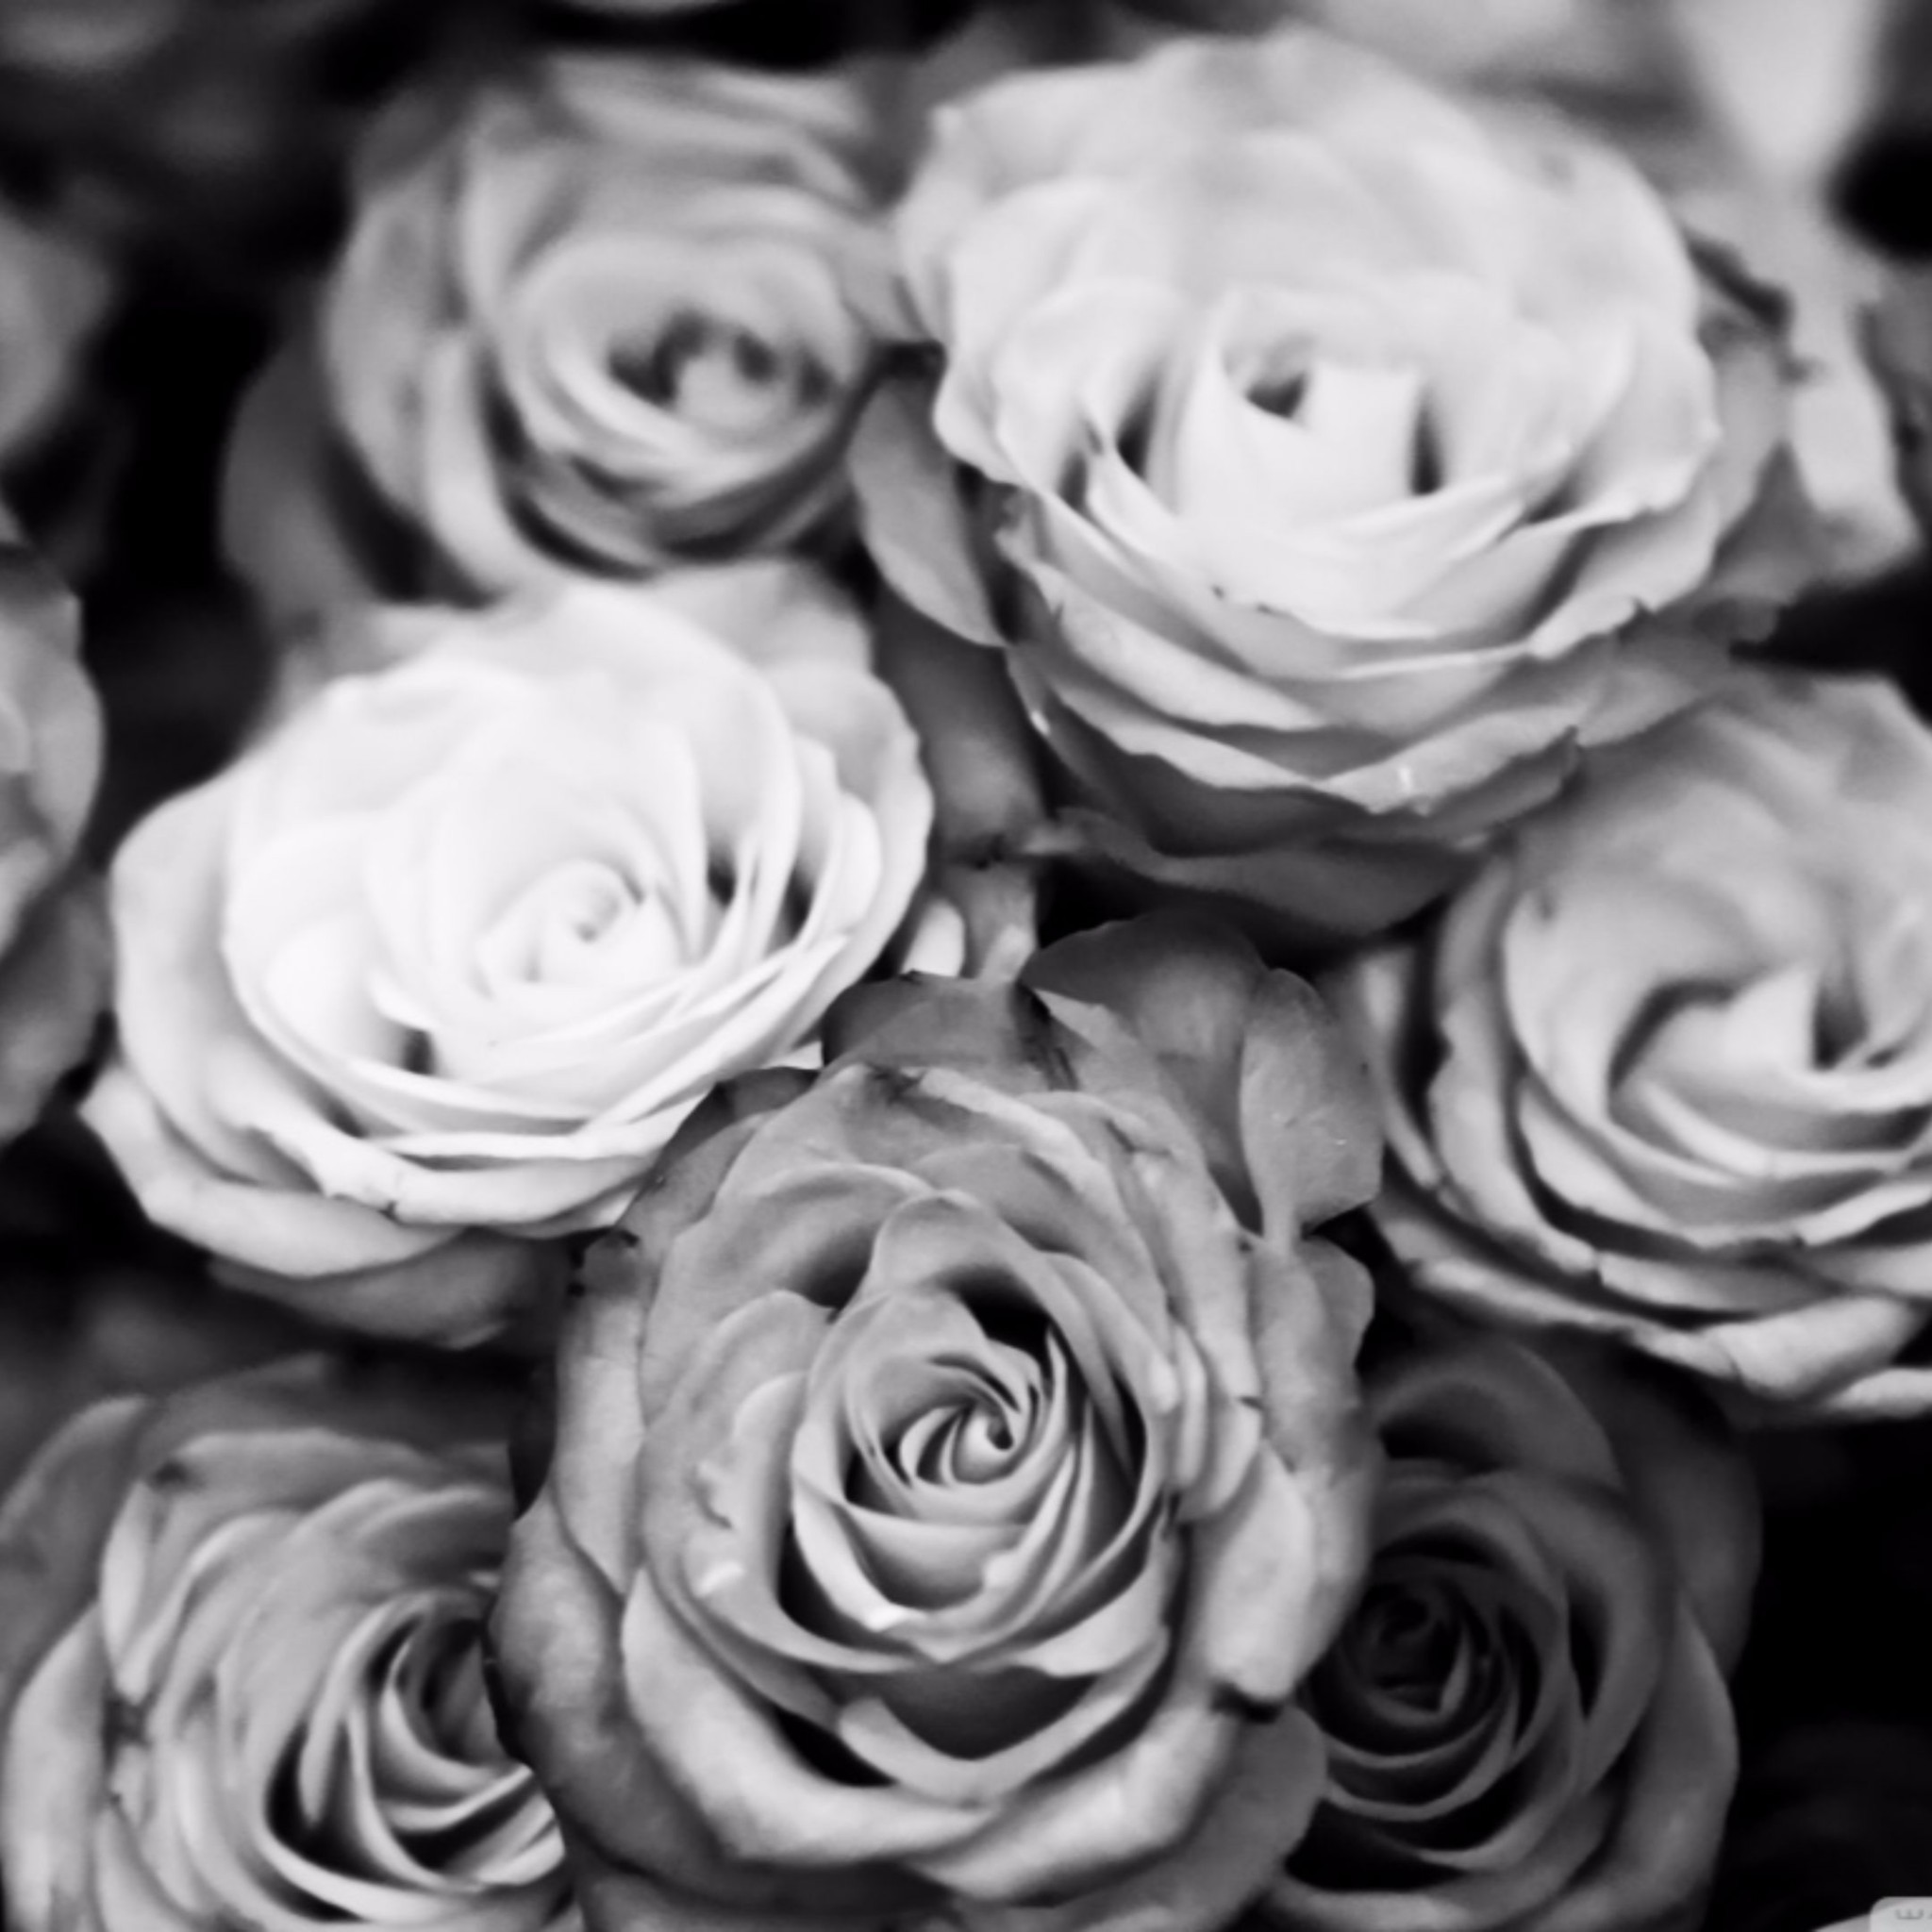 Black And White Flowers Wallpapers Hd: Black And White Rose Wallpaper ·① WallpaperTag